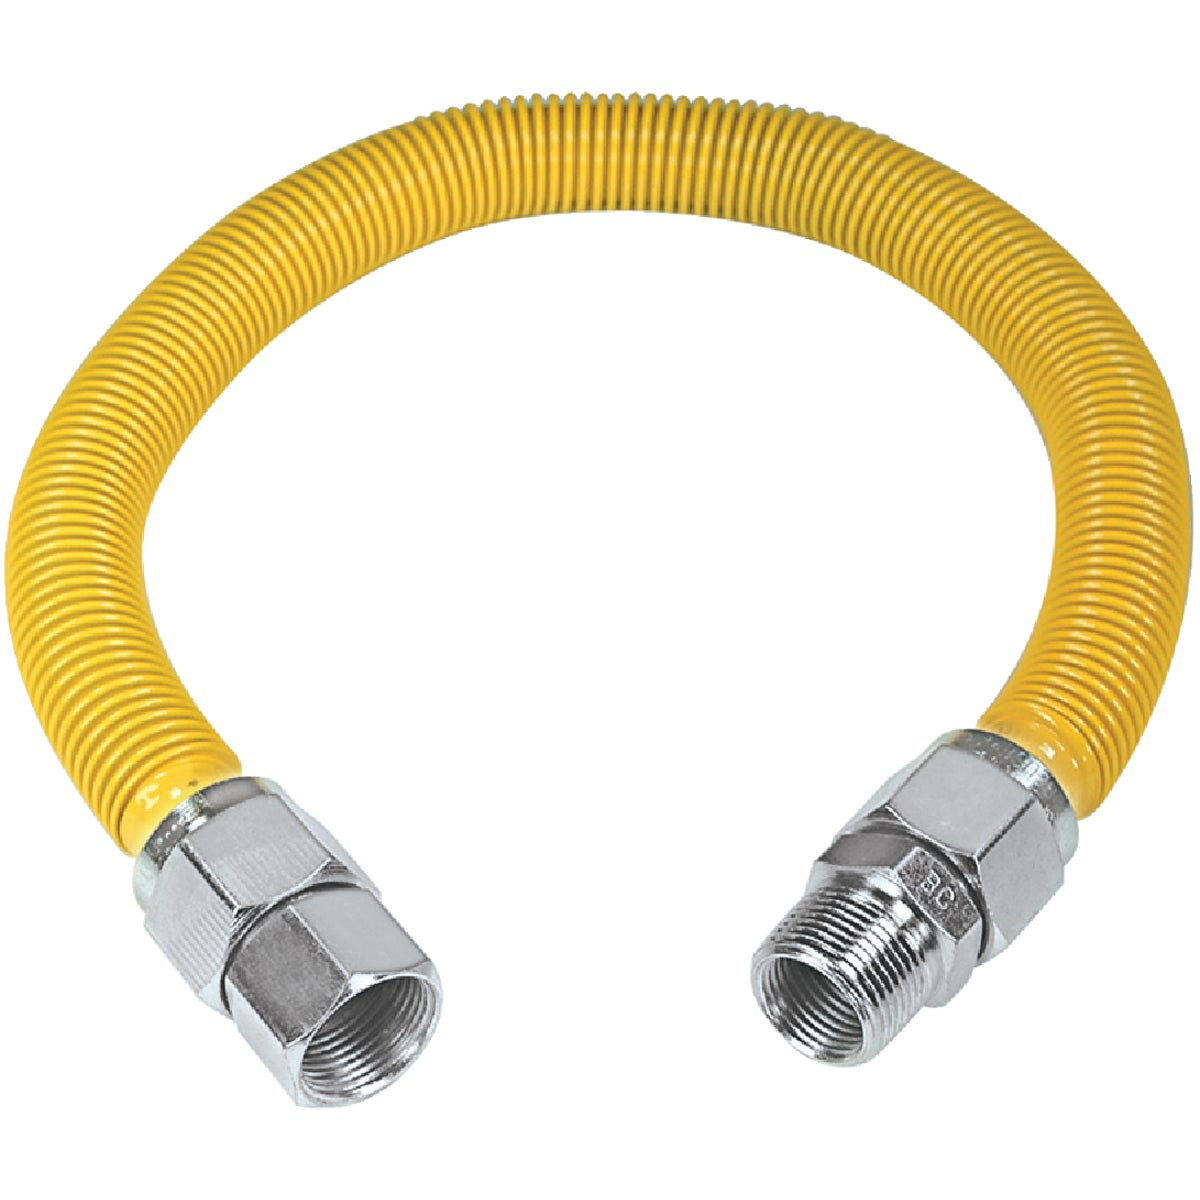 7/8X24 GAS CONNECTOR